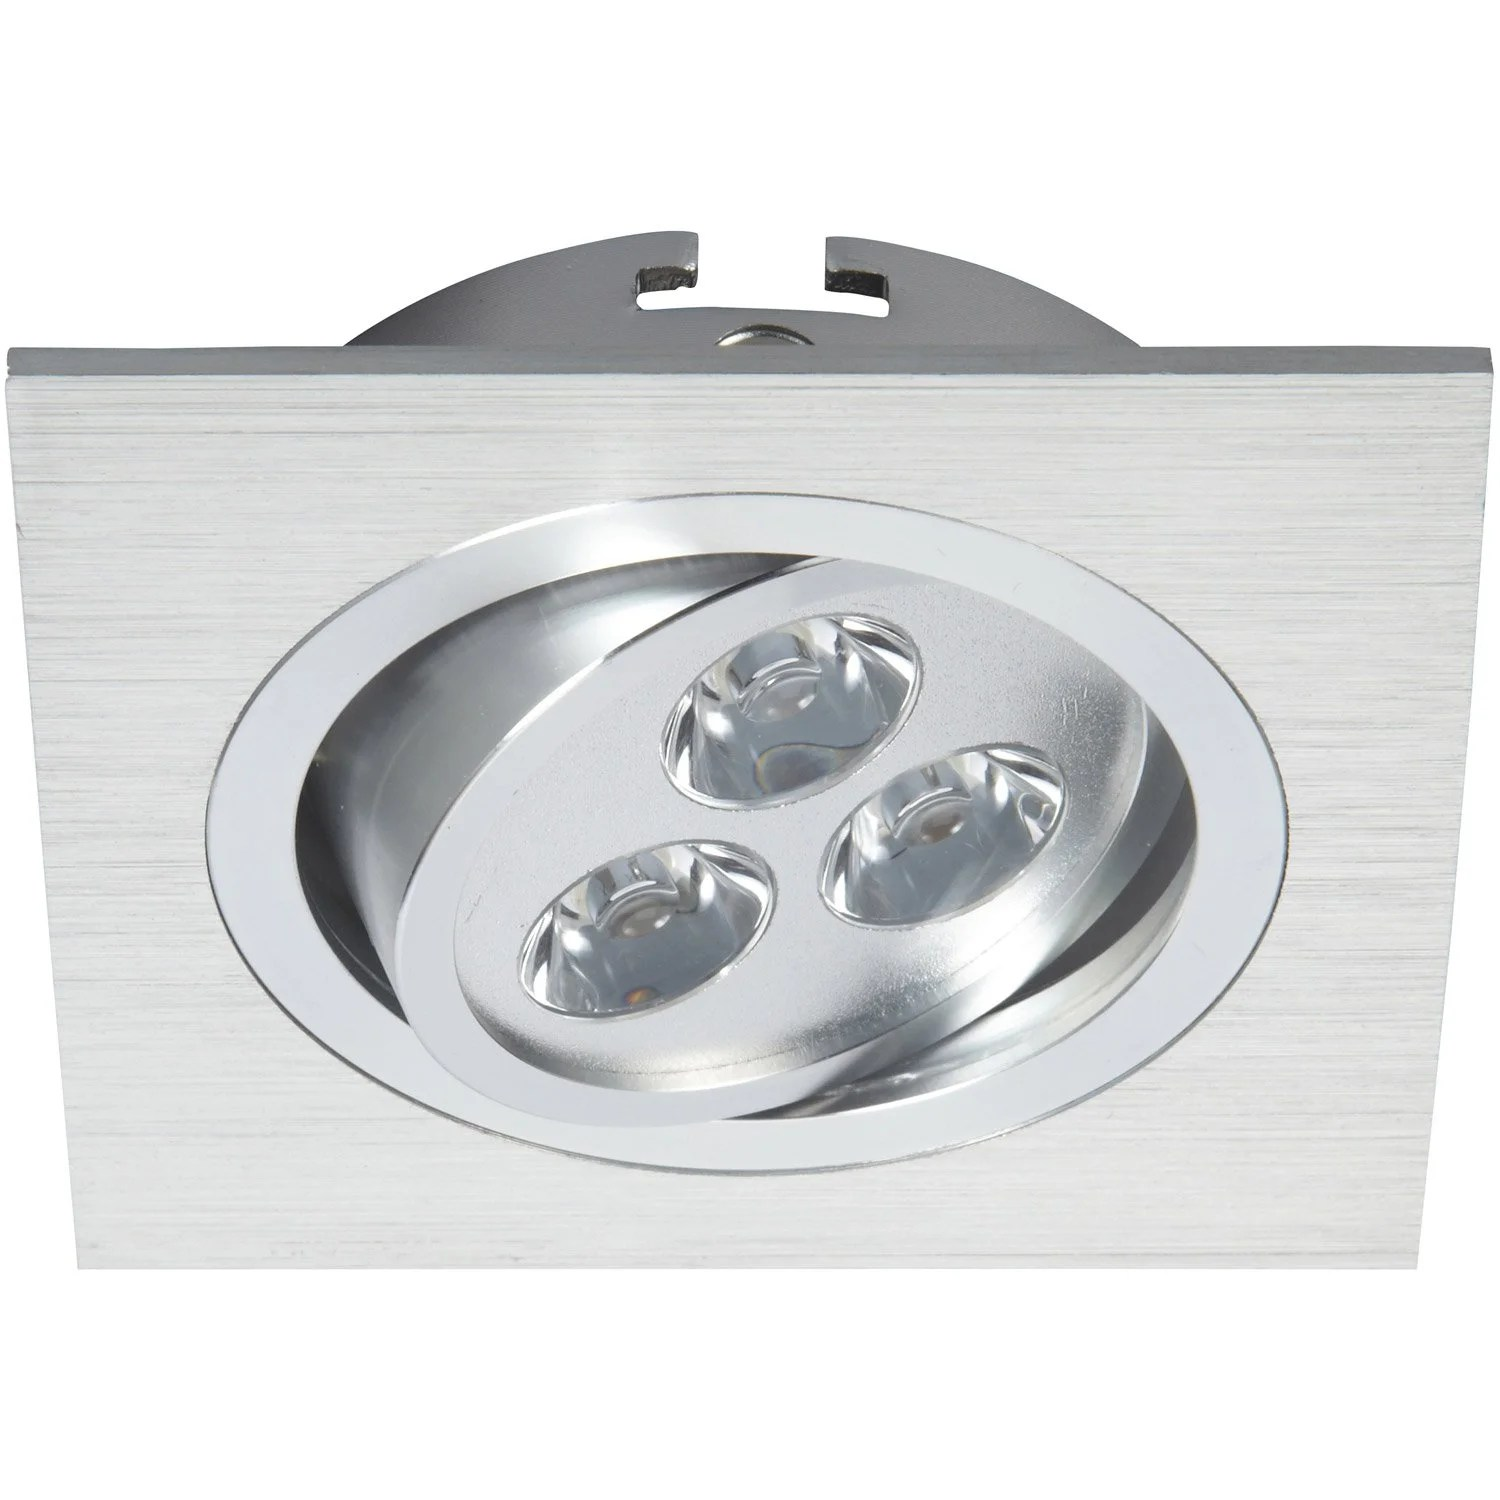 Mini Spot Led Encastrable Leroy Merlin Spot Exterieur Encastrable Plafond Stunning Luminaire